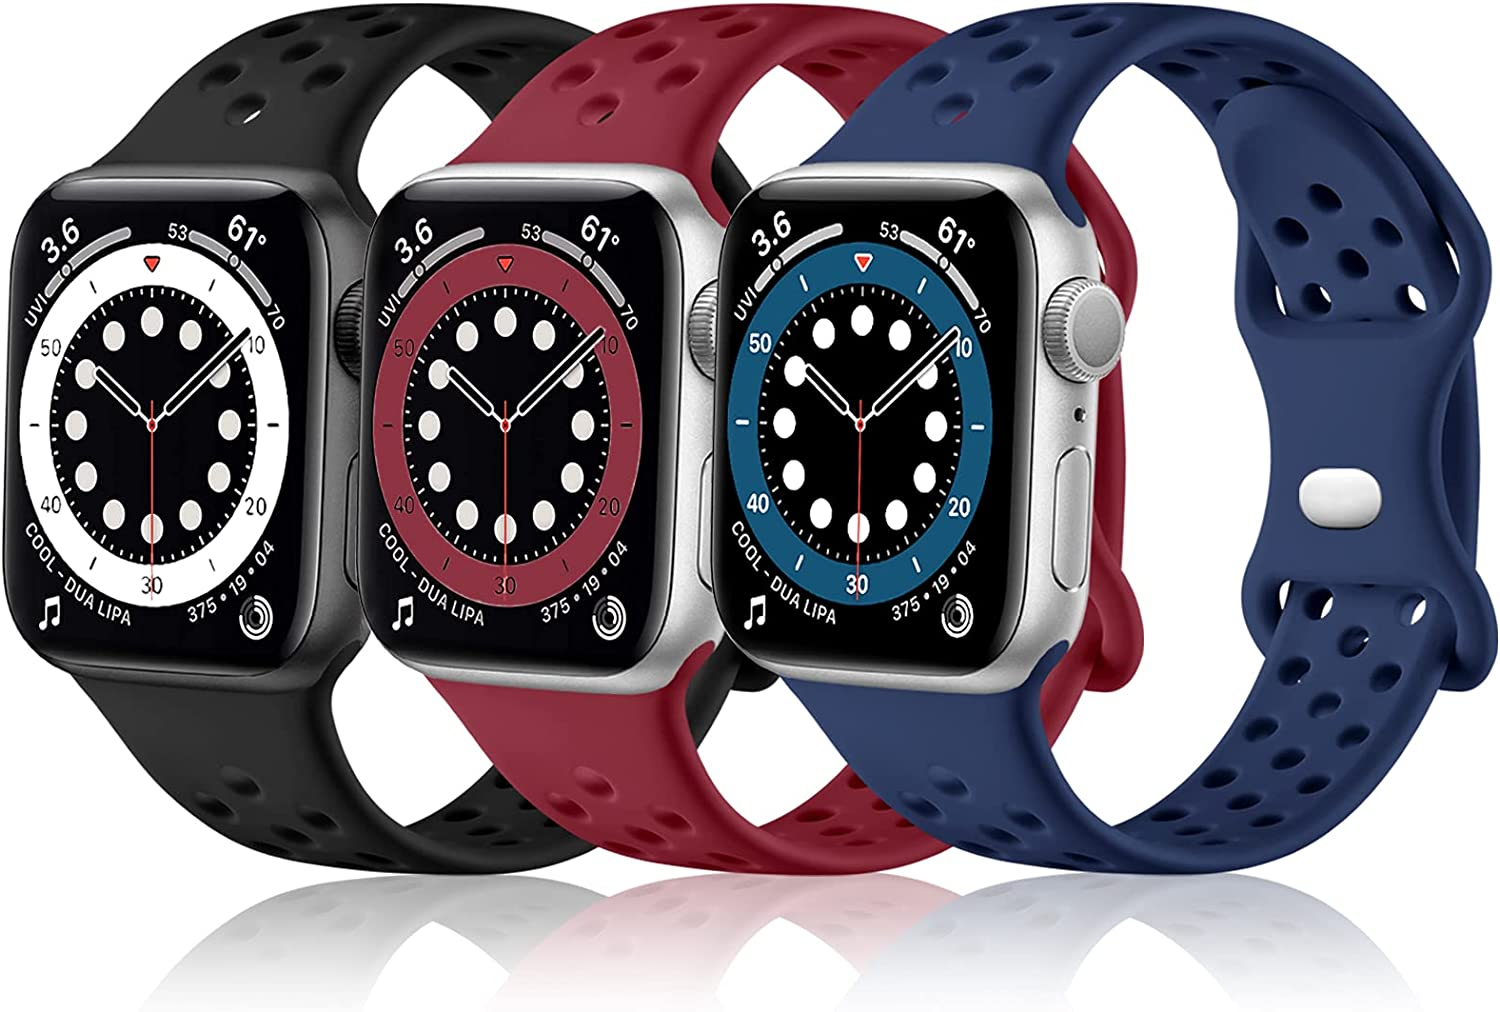 Rubinom Sport Bands Compatible for Apple Watch 40mm 38mm Women Men, Soft Silicone Breathable Holes Replacement Wristband for iWatch SE & Series 6/5/4/3/2/1, 3 Pack of Dark Blue/Black/Wine Red